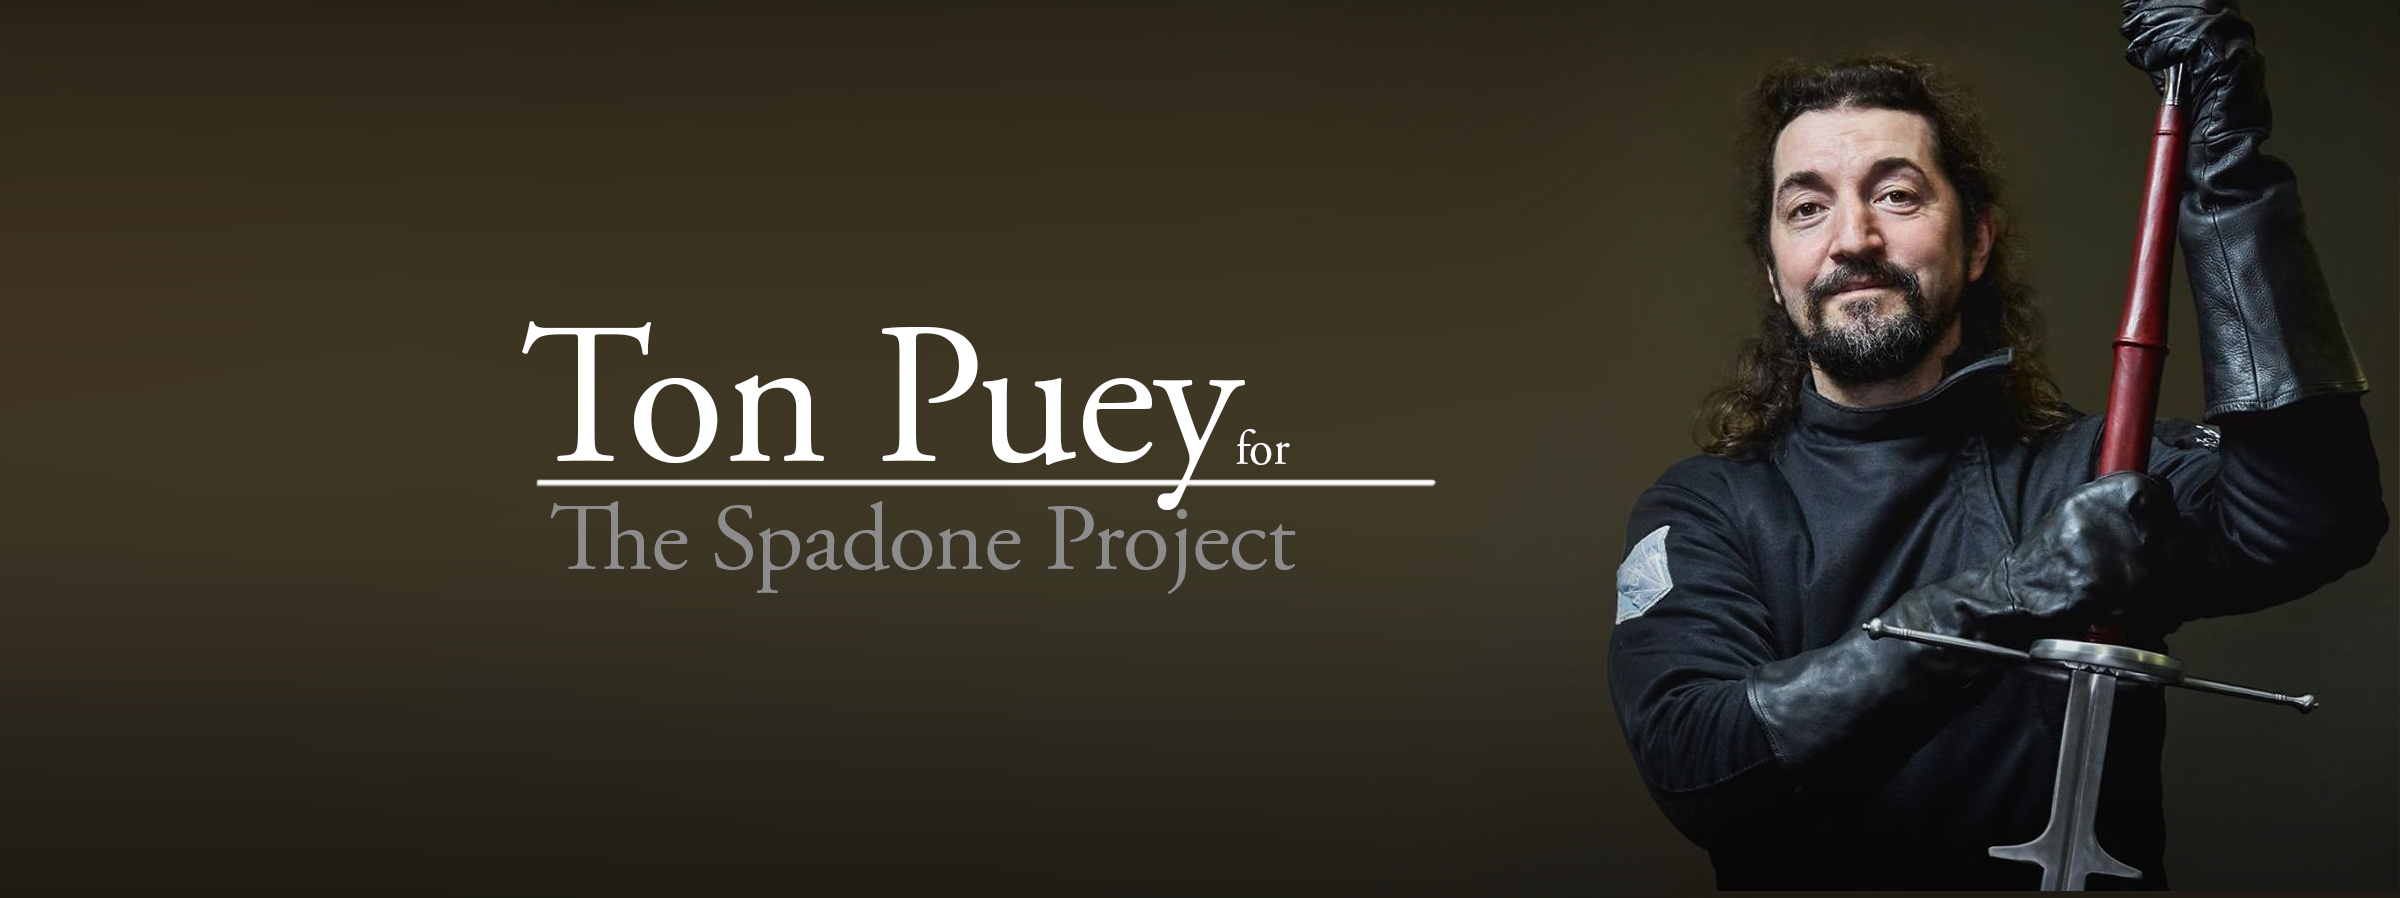 Iberian montante: an interview with Ton Puey